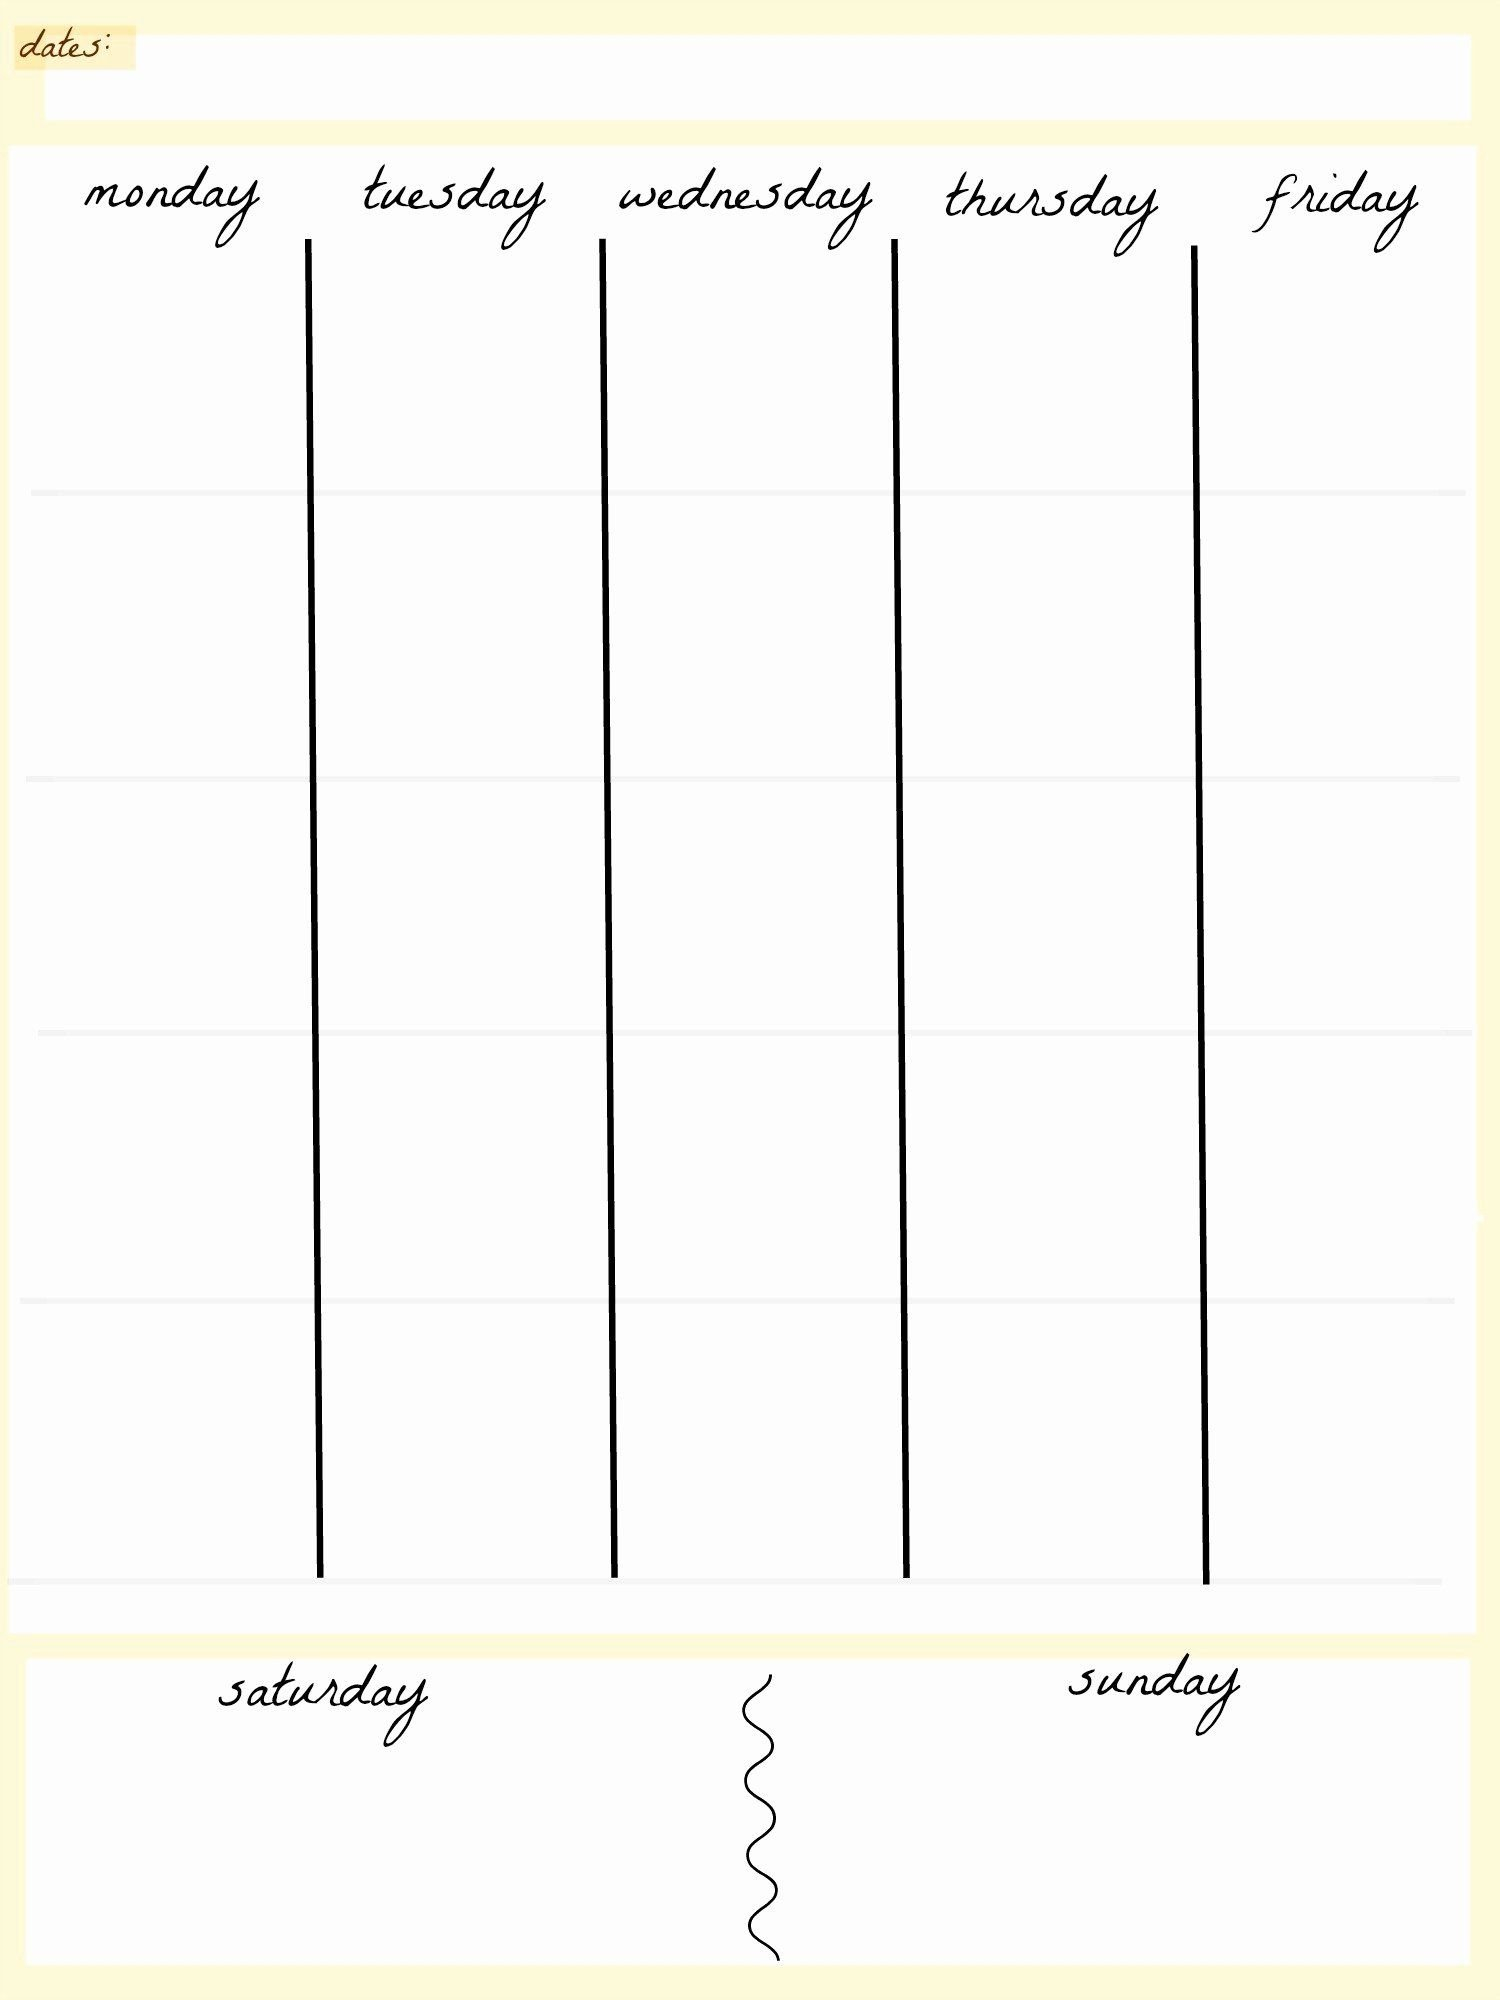 Awesome 5 Day Schedule Template In 2020 | Weekly Calendar 5 Day Calendar Template